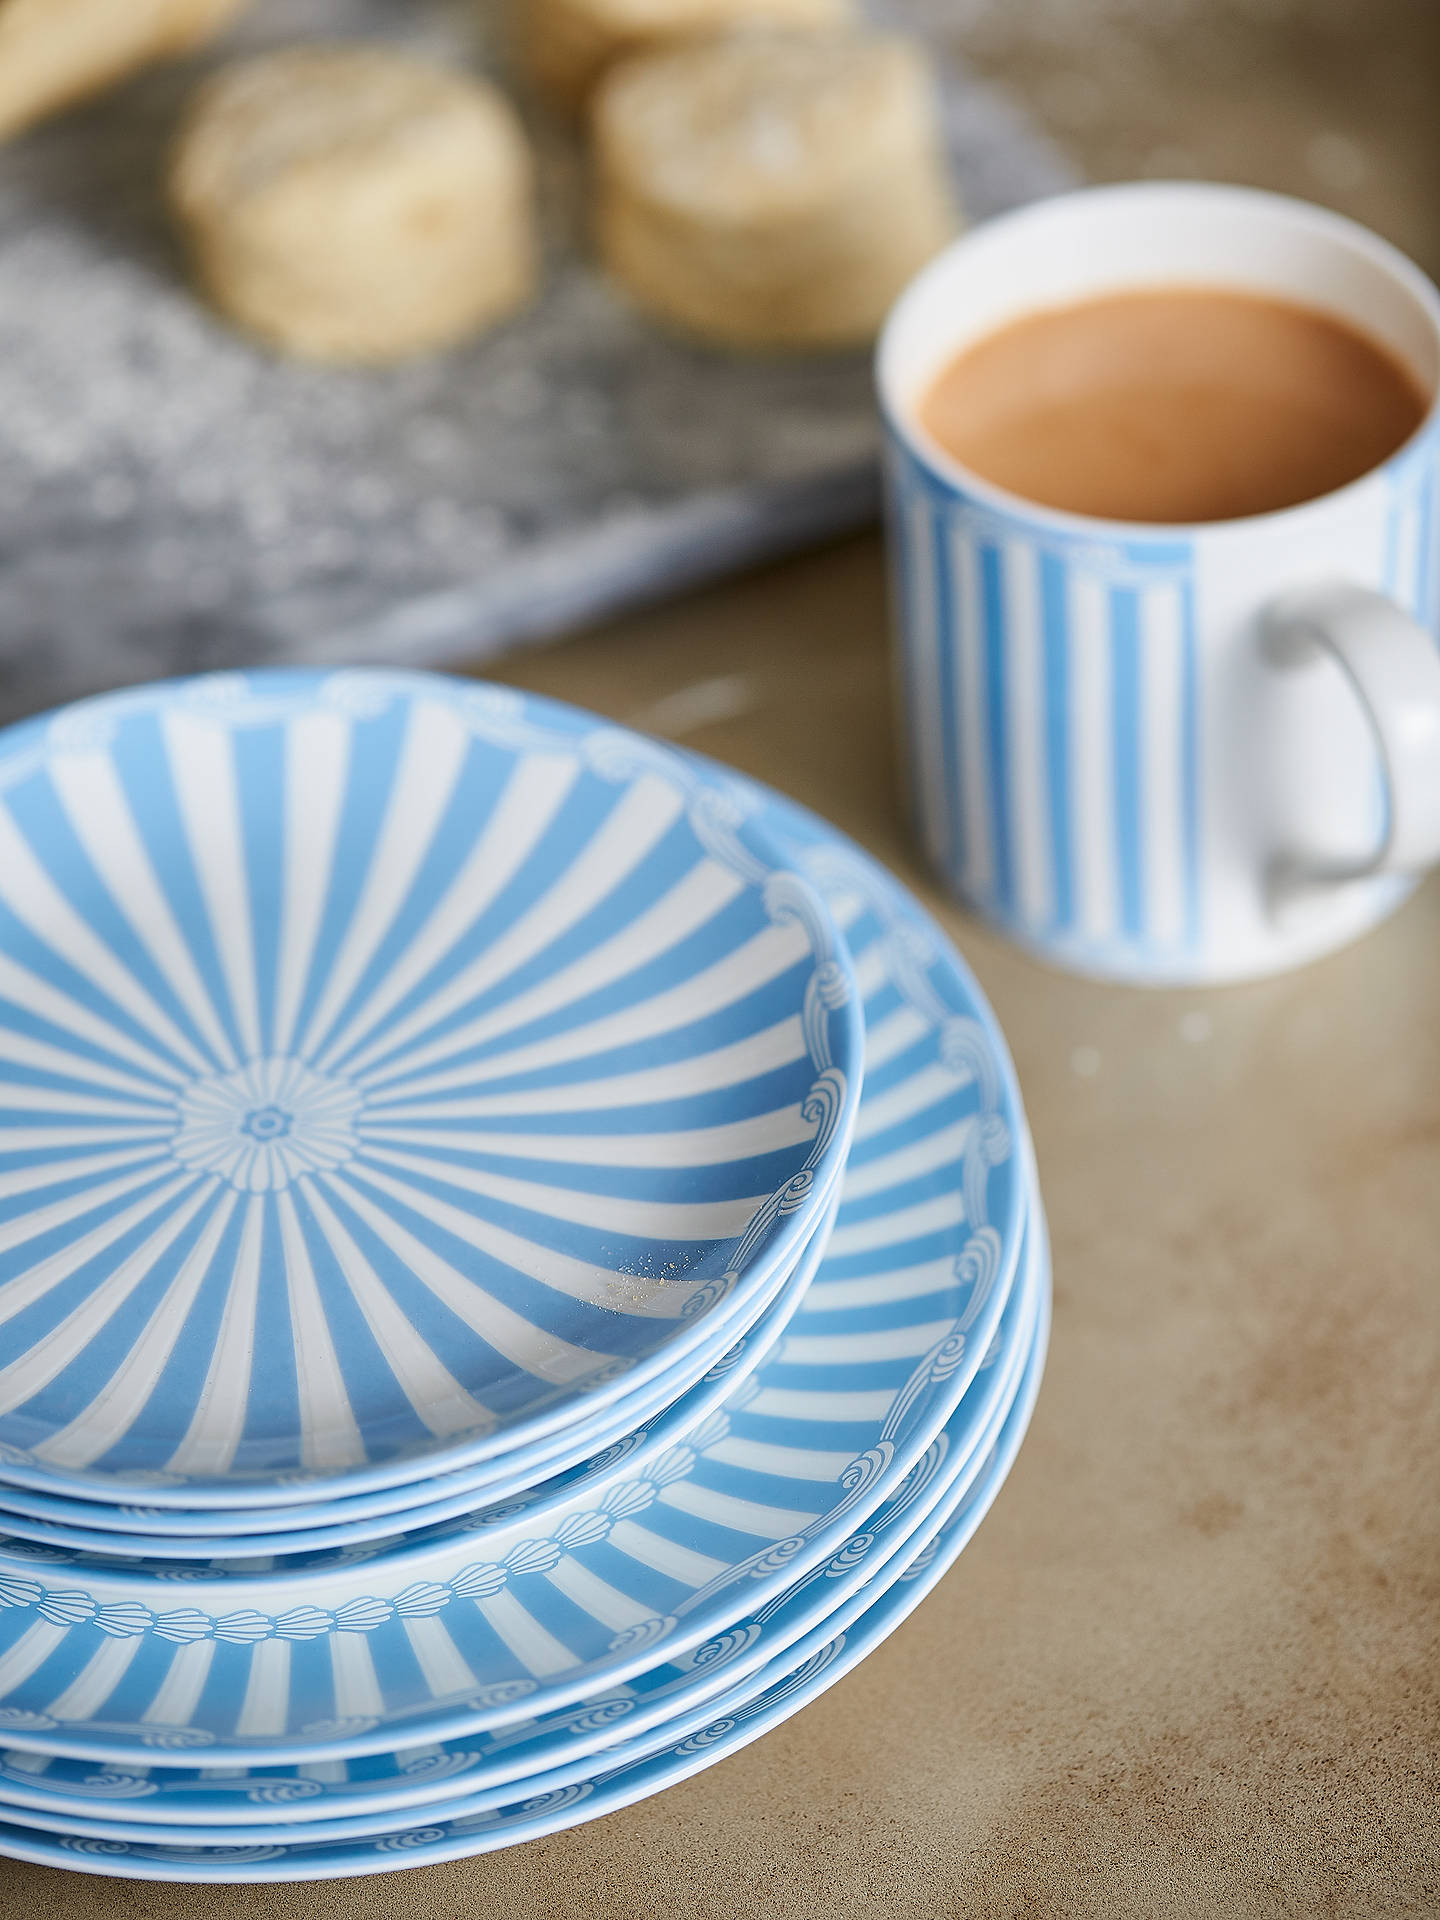 Buy Little Venice Cake Company Coupe Plate, Blue/White, 16.5cm Online at johnlewis.com